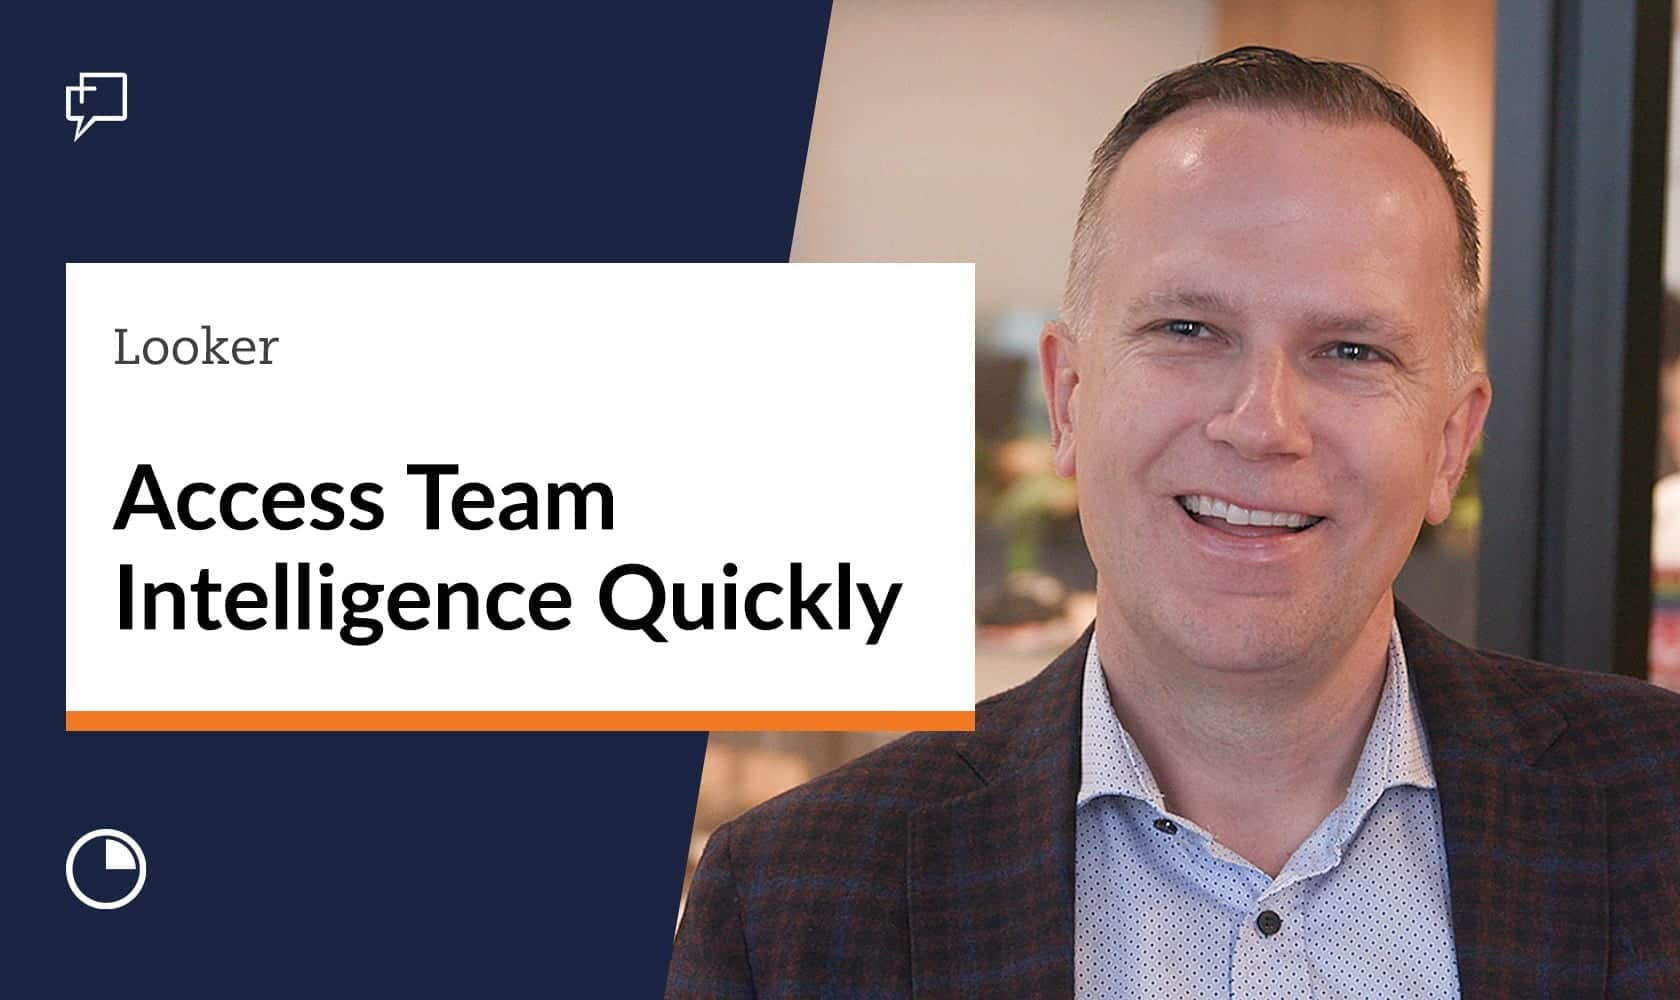 Accessing Team Intelligence Quickly